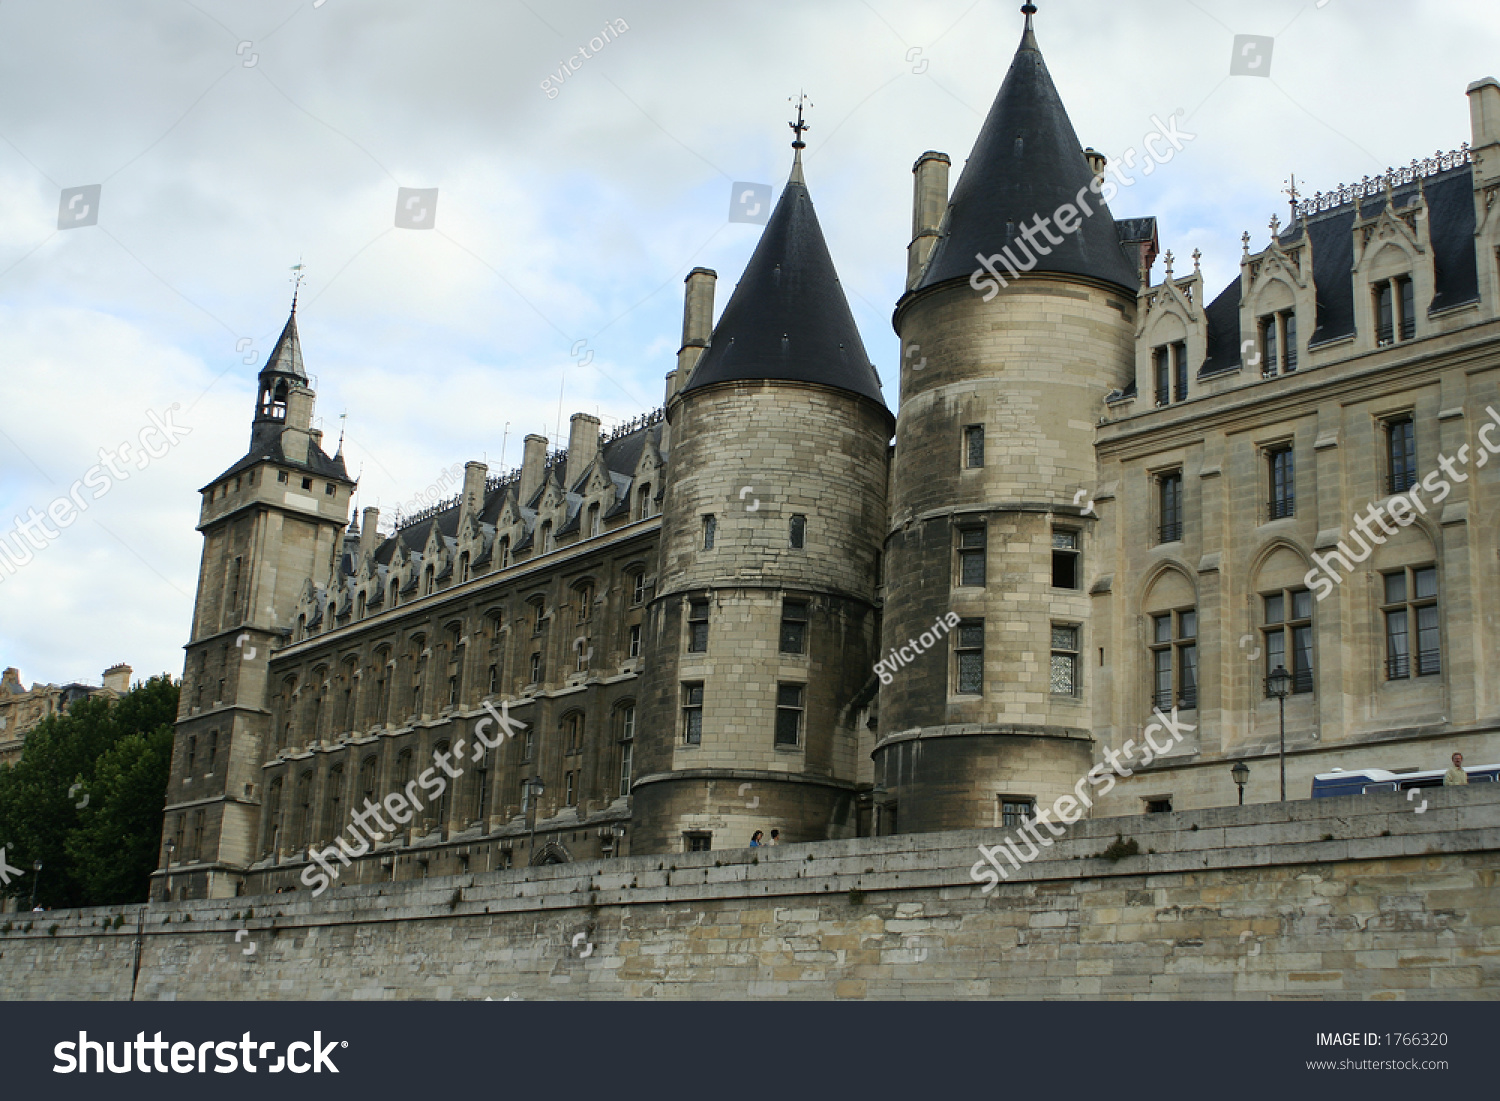 The Concierge In Paris. France Stock Photo 1766320 : Shutterstock